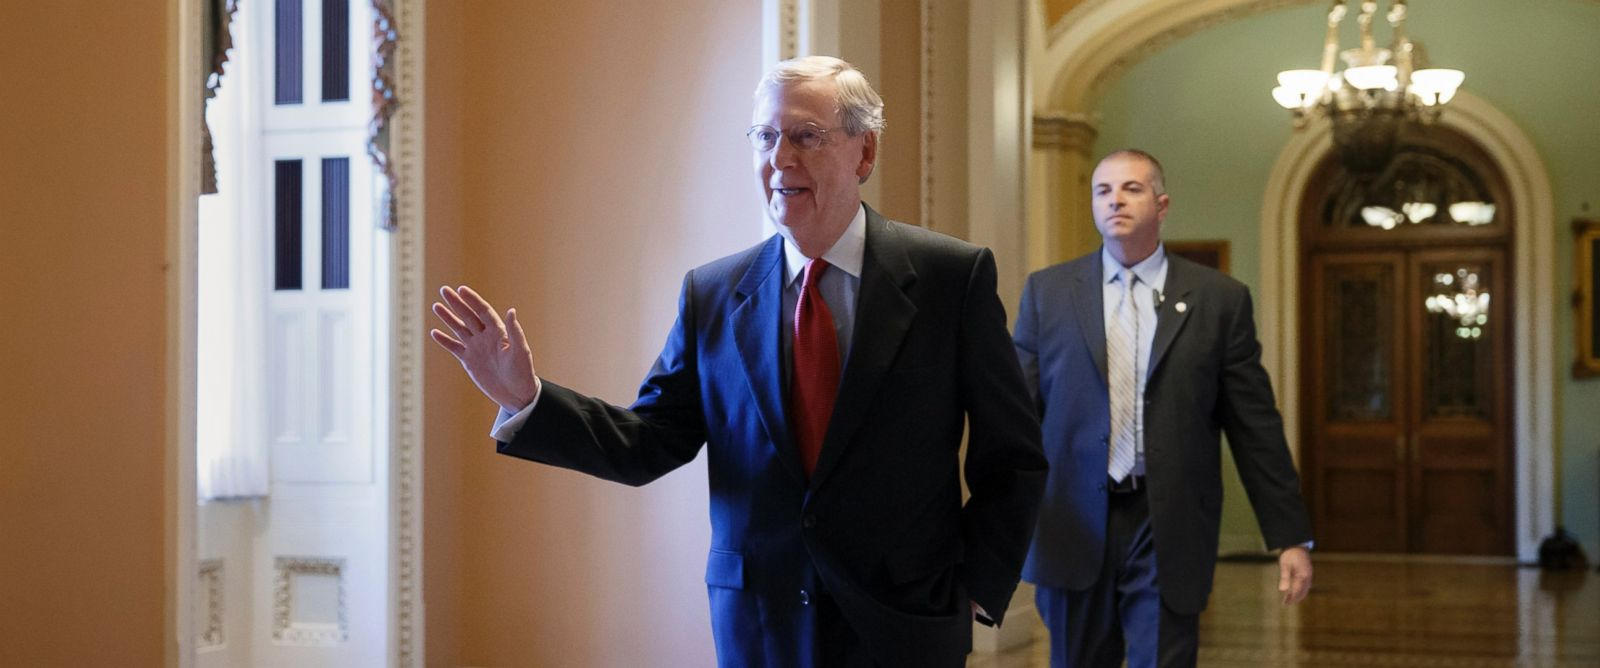 PHOTO: Senate Minority Leader Mitch McConnell of Ky. walks to his office on Capitol Hill in Washington, Nov. 12, 2014, to meet with new GOP senators-elect.